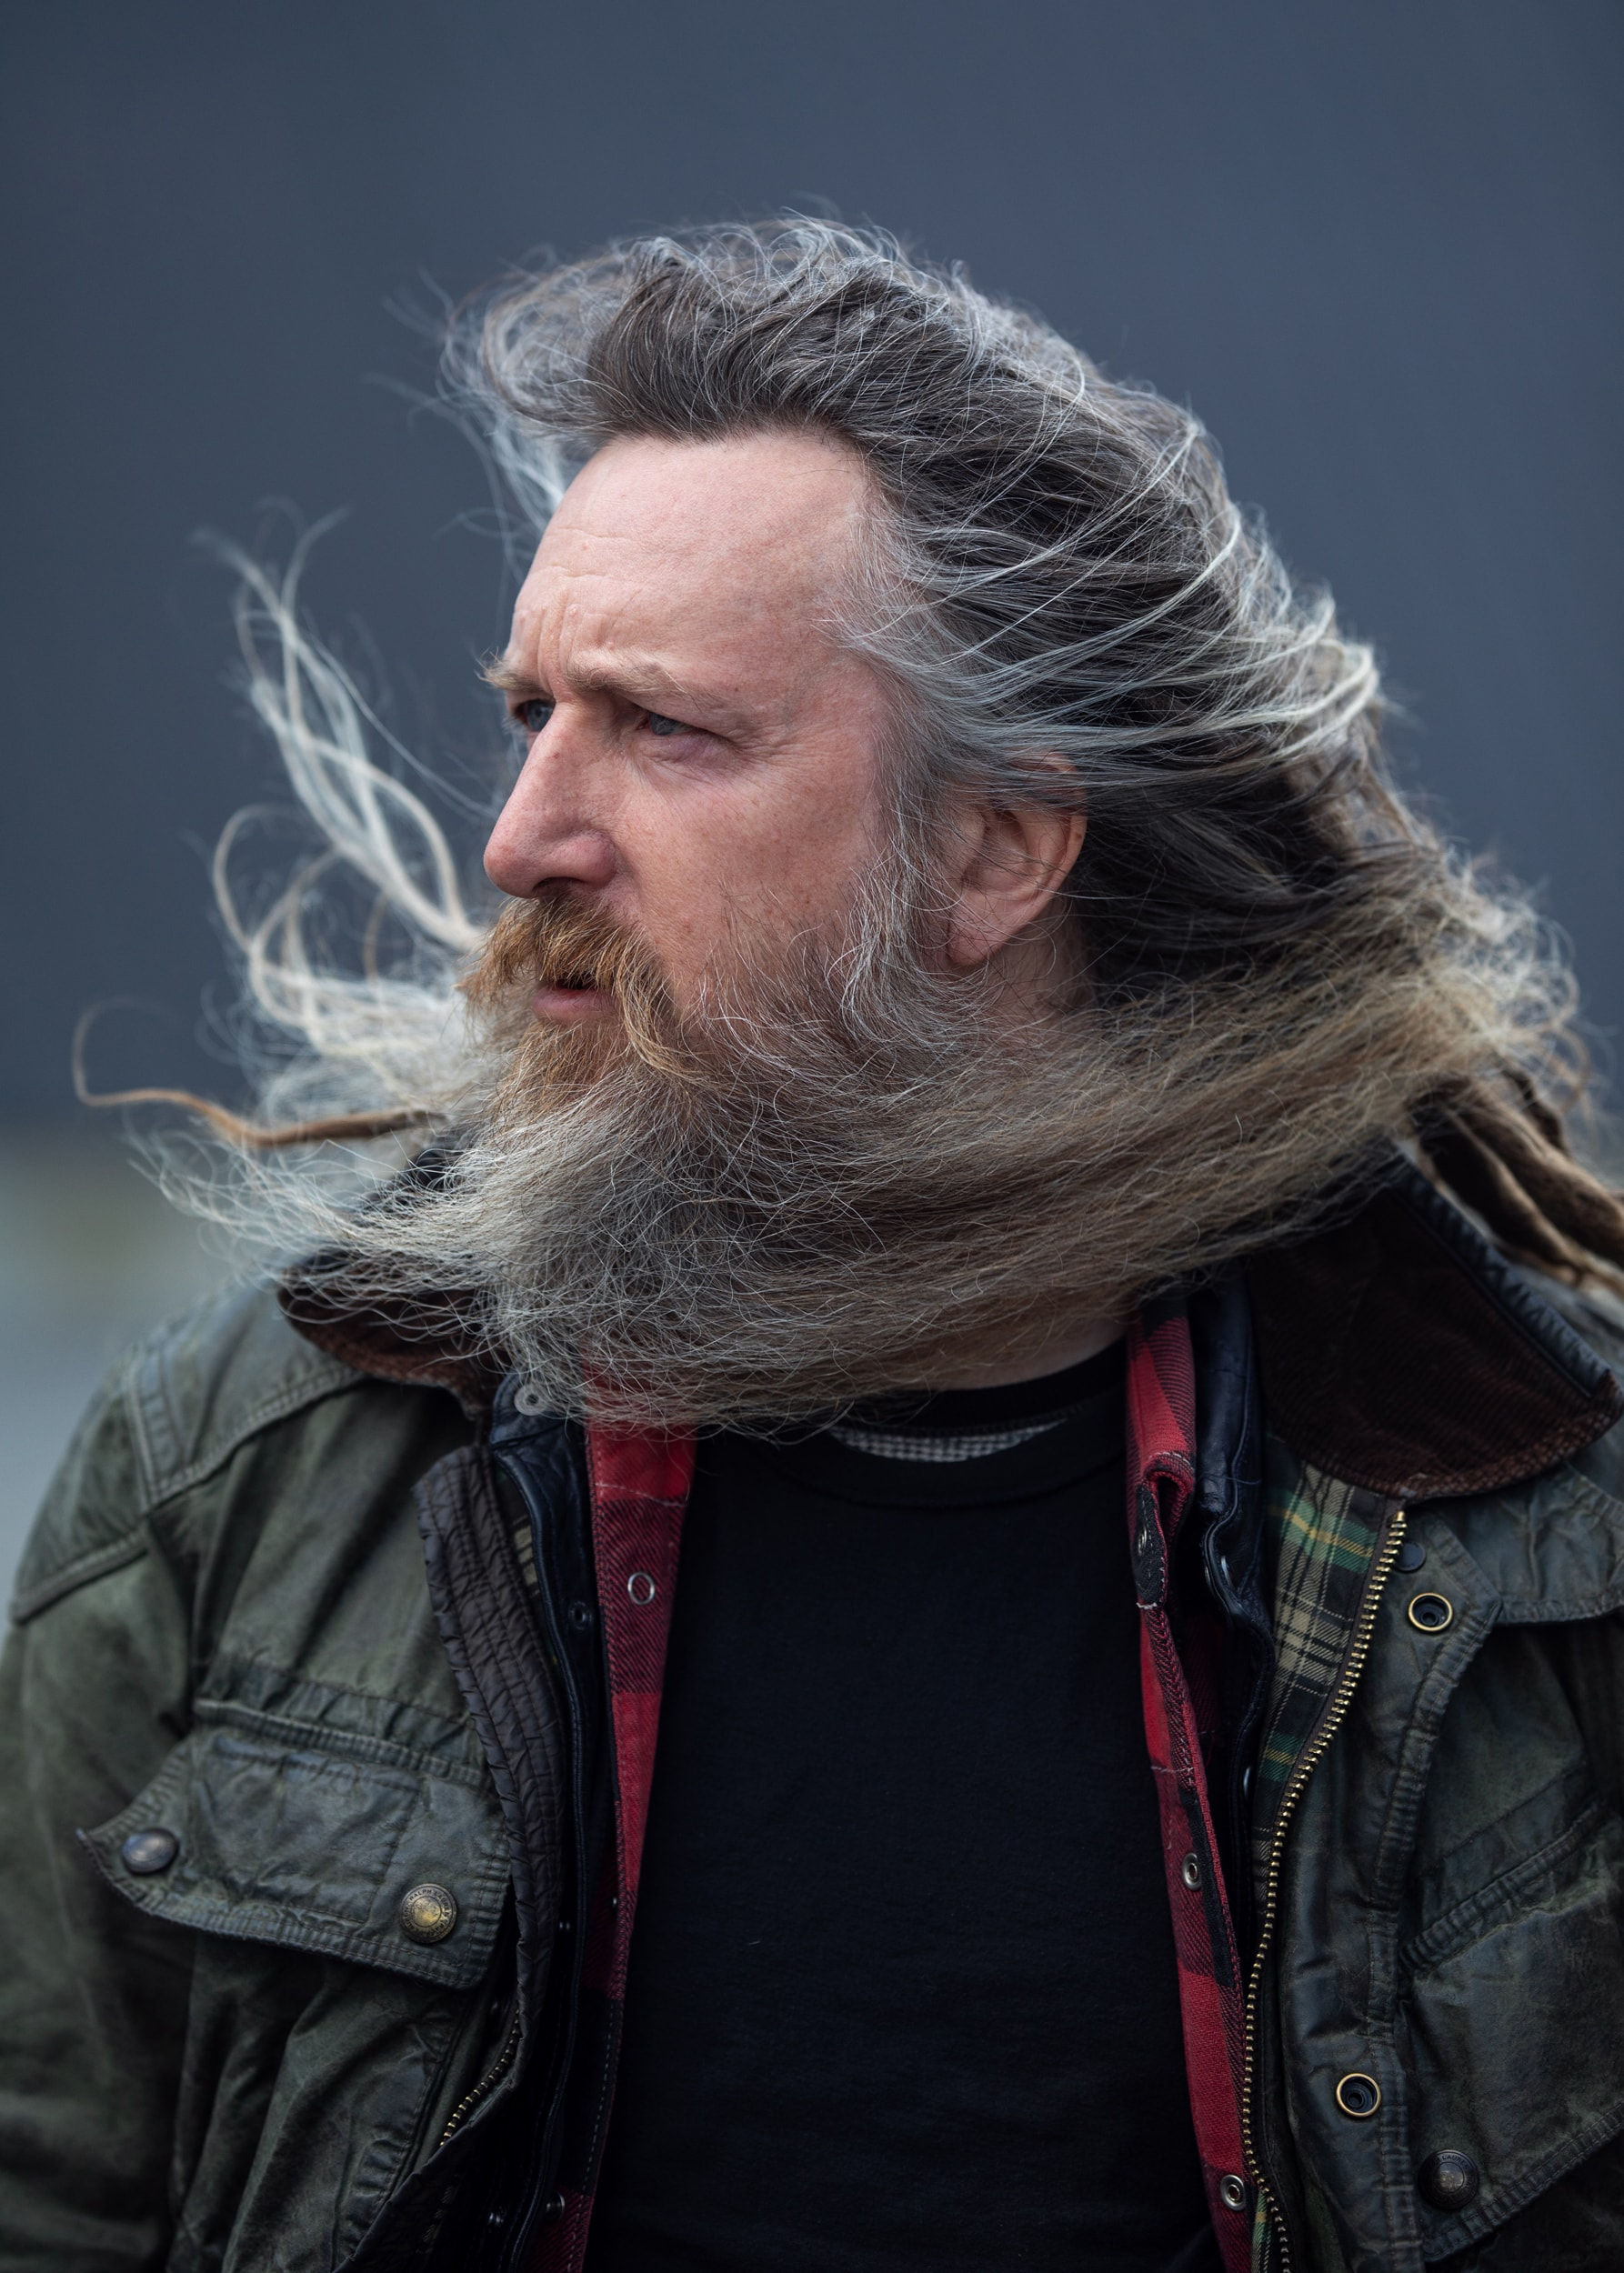 Kimm Saatvedt – Magnus Walker for Porsche Magazine